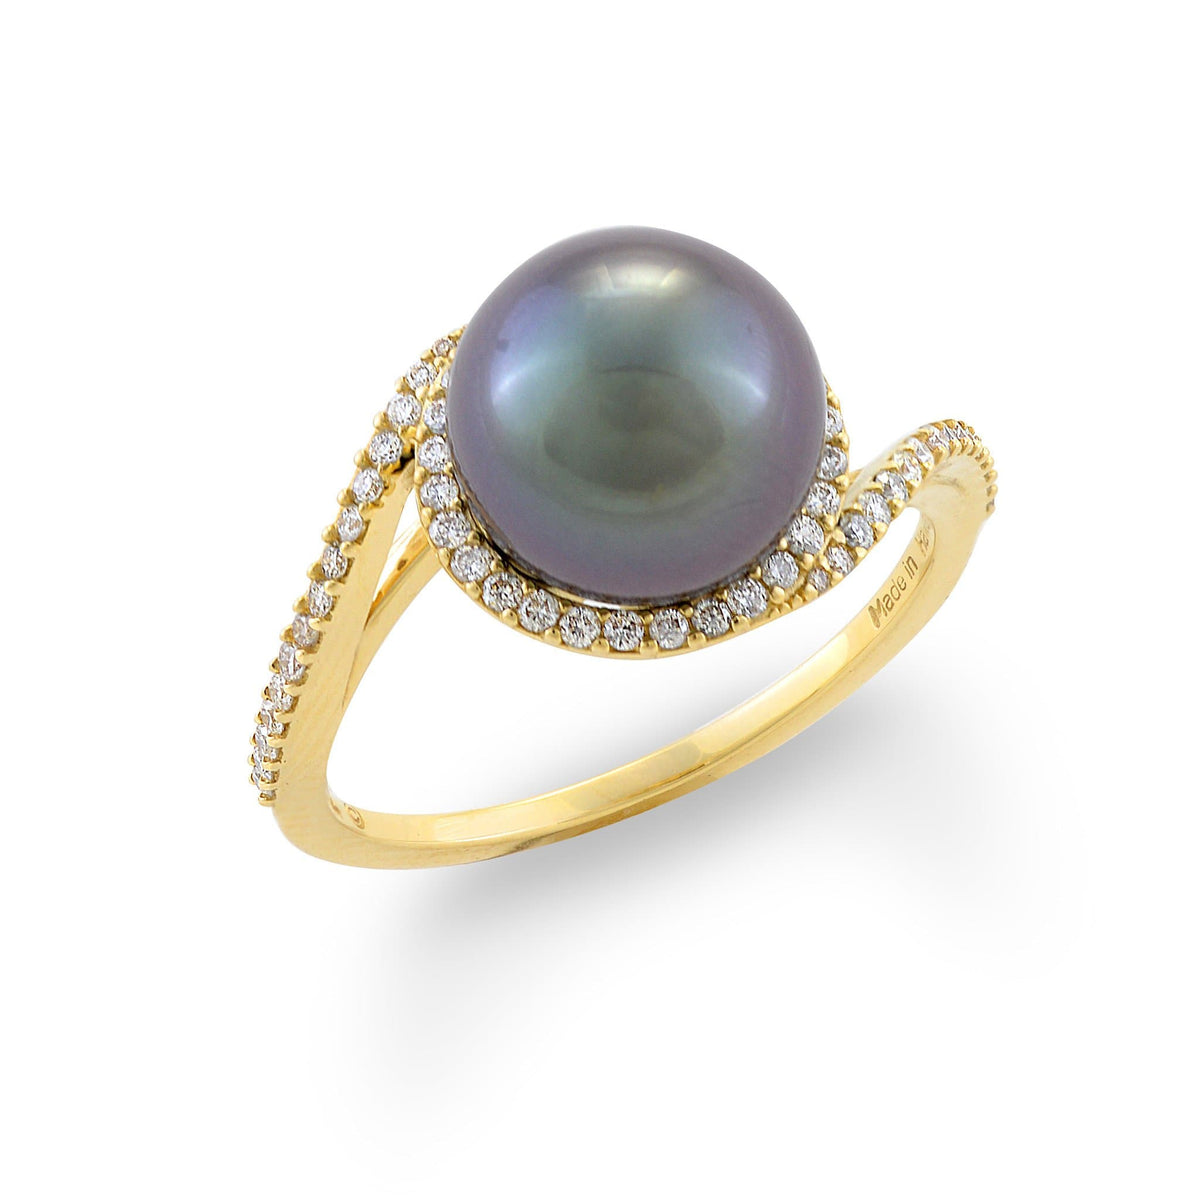 Halo Bypass Tahitian Black Pearl Ring with Diamonds in 14K Yellow Gold (9-10mm) 006-14403